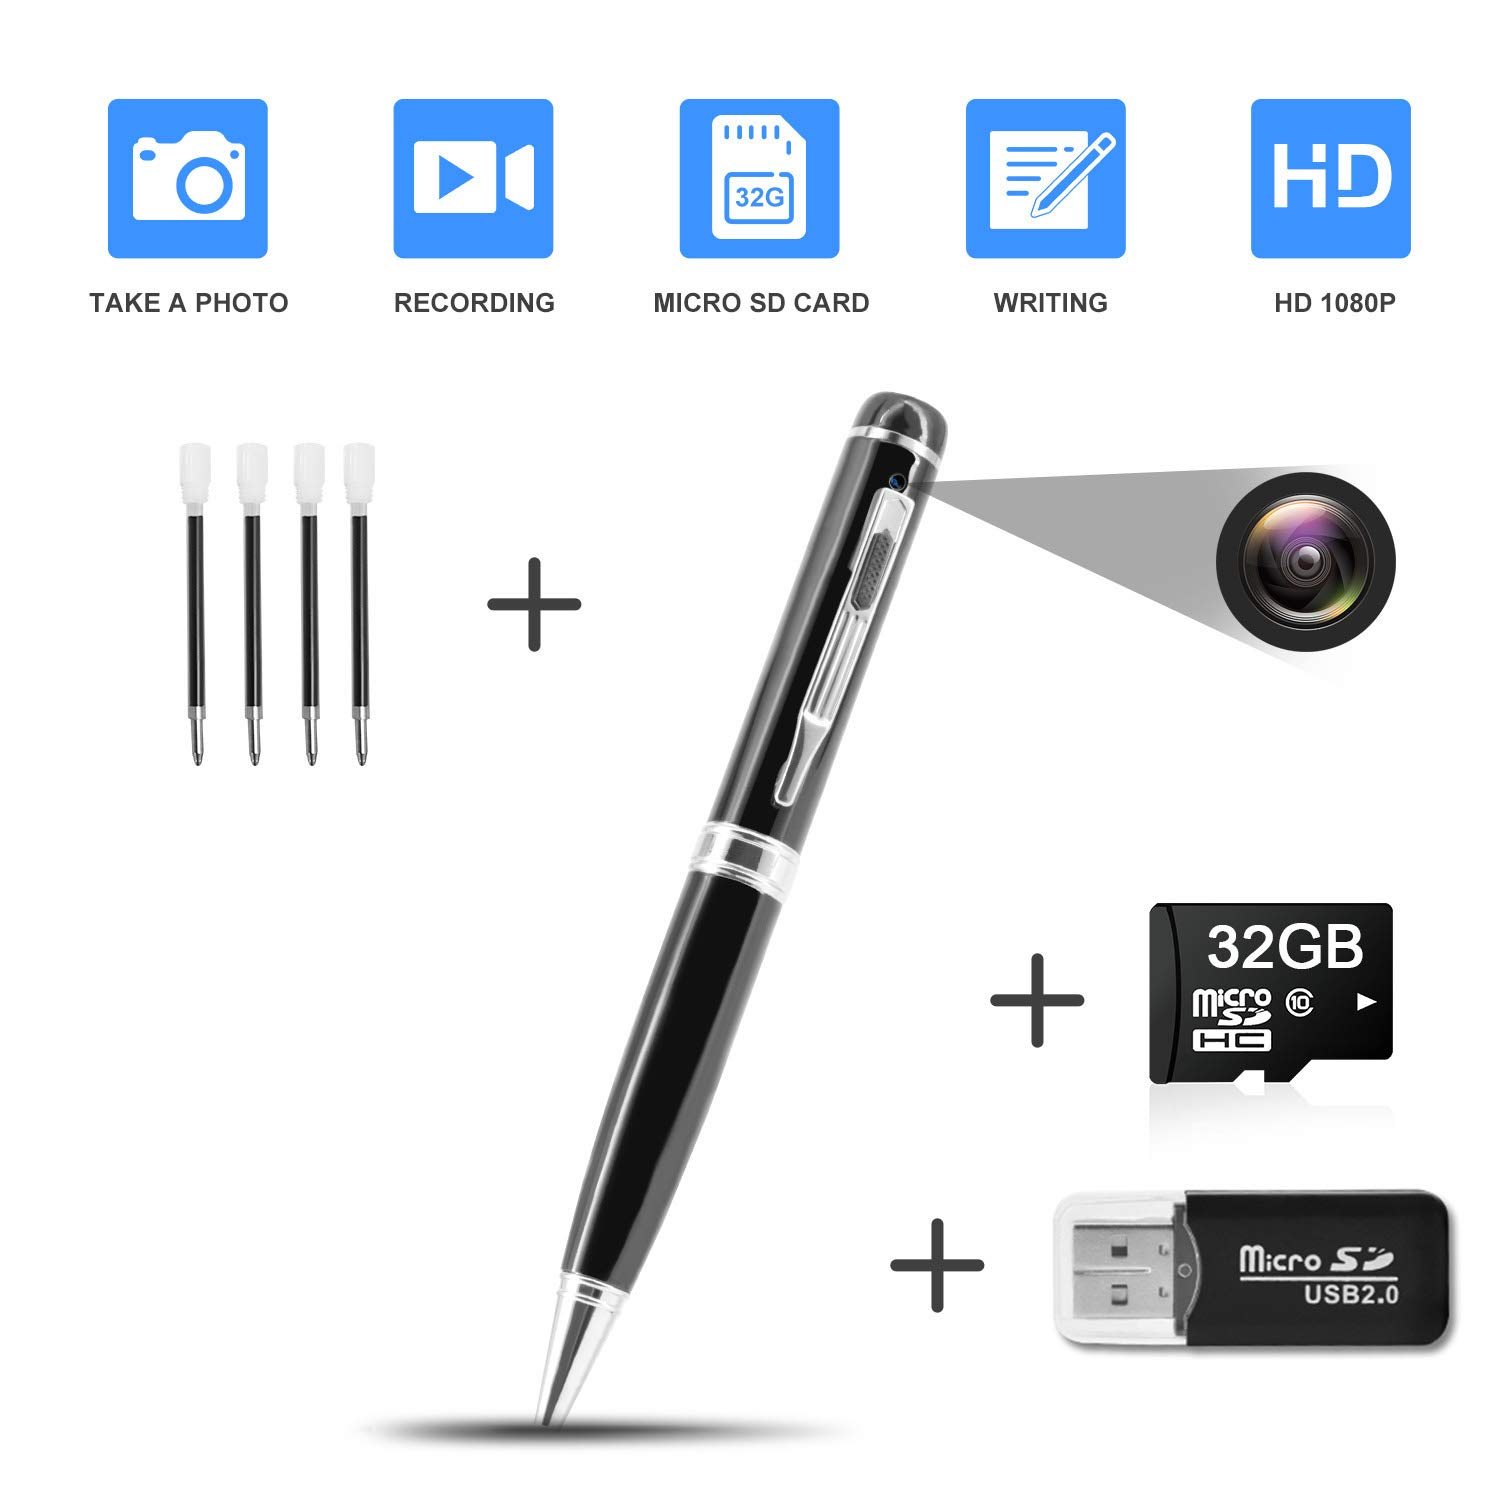 Hidden Pen Camera Spy Pen Camera HD 1080P Clip On Body Camera Mini Camera Pen 32GB SD Card with Included Wonderful Spy Gadgets for Business and Conference by DZFtech